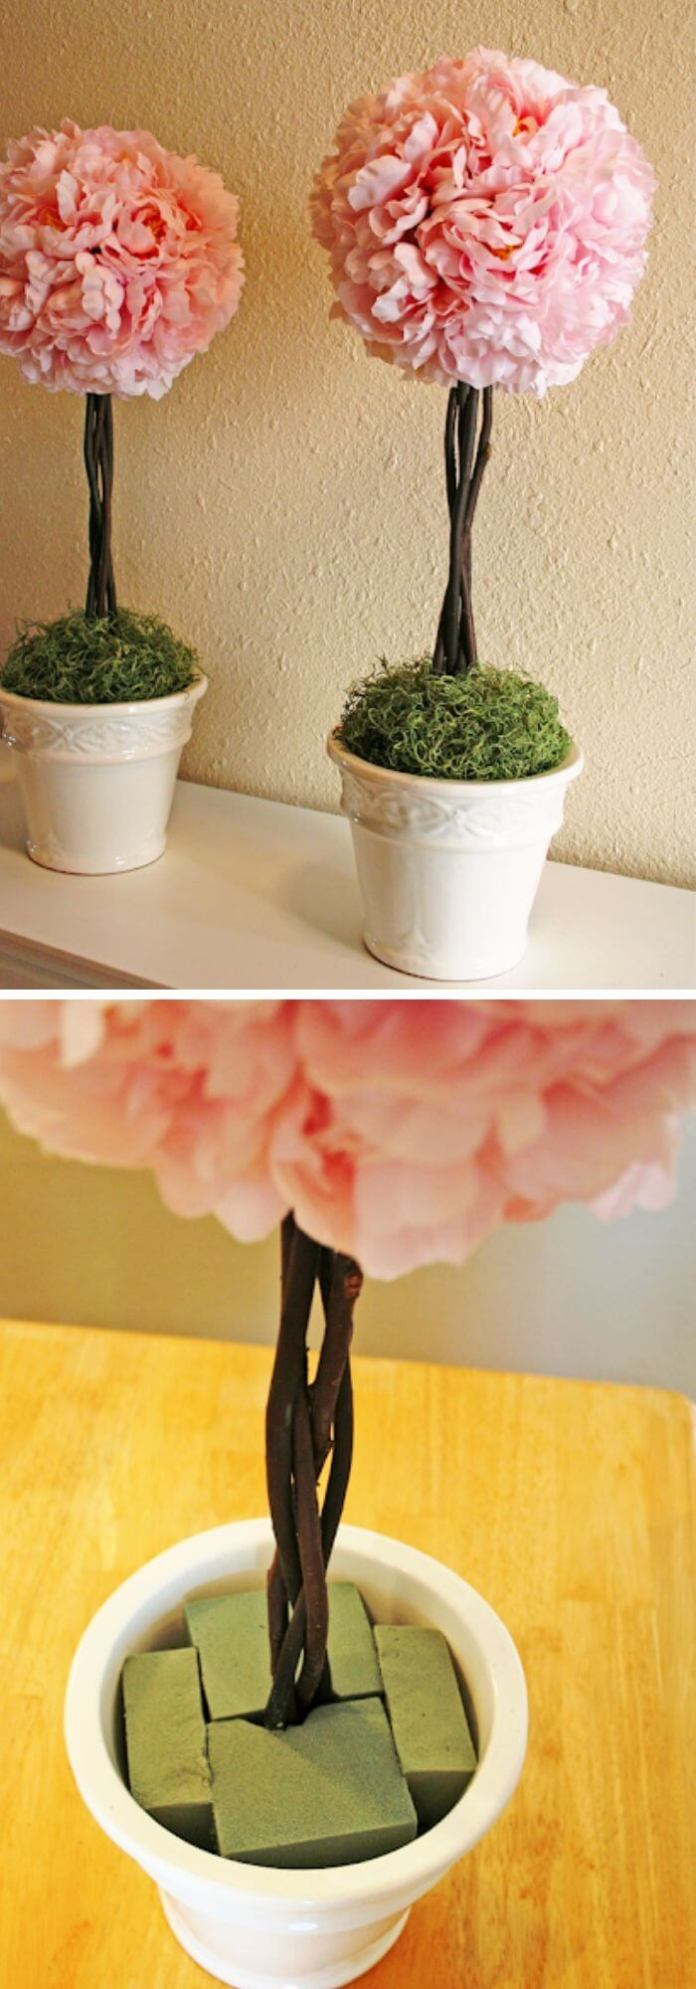 how to make a topiary tree in pot for beginners DIY peony topiaries